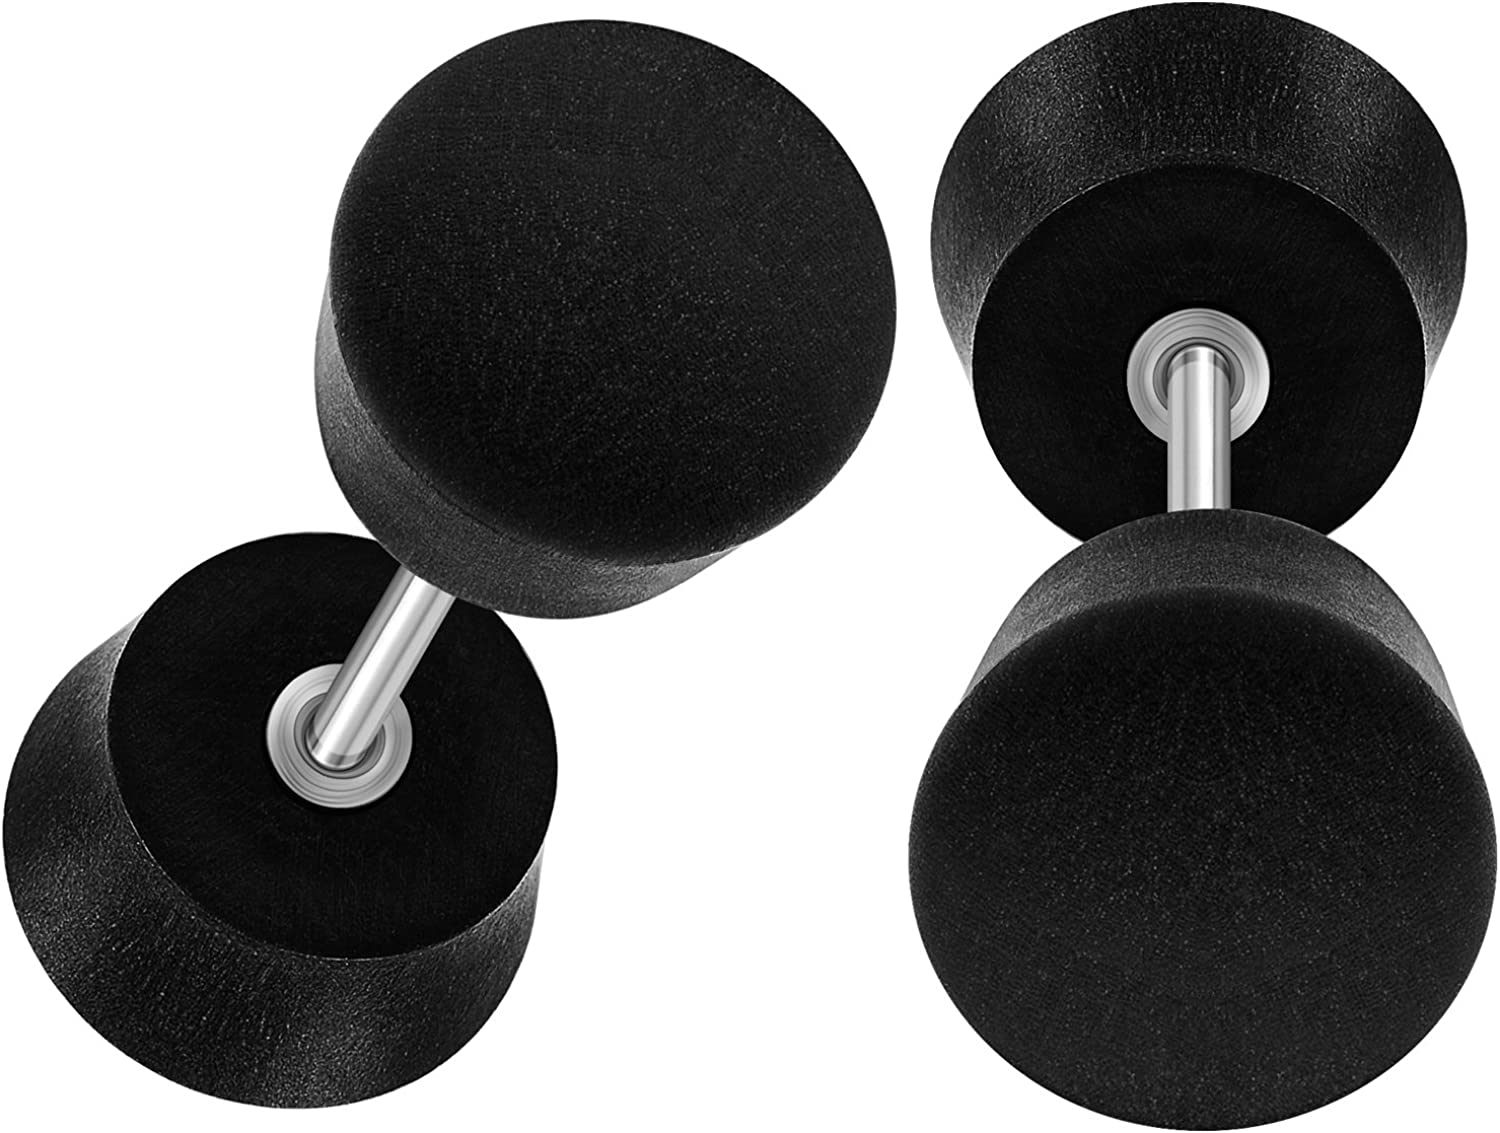 BIG GAUGES Pair of 316L Surgical Steel 16g Gauge 1.2mm Black Areng Wood Size 8mm Fake Plugs Piercing Jewelry Cheater Earring Lobe BG0823